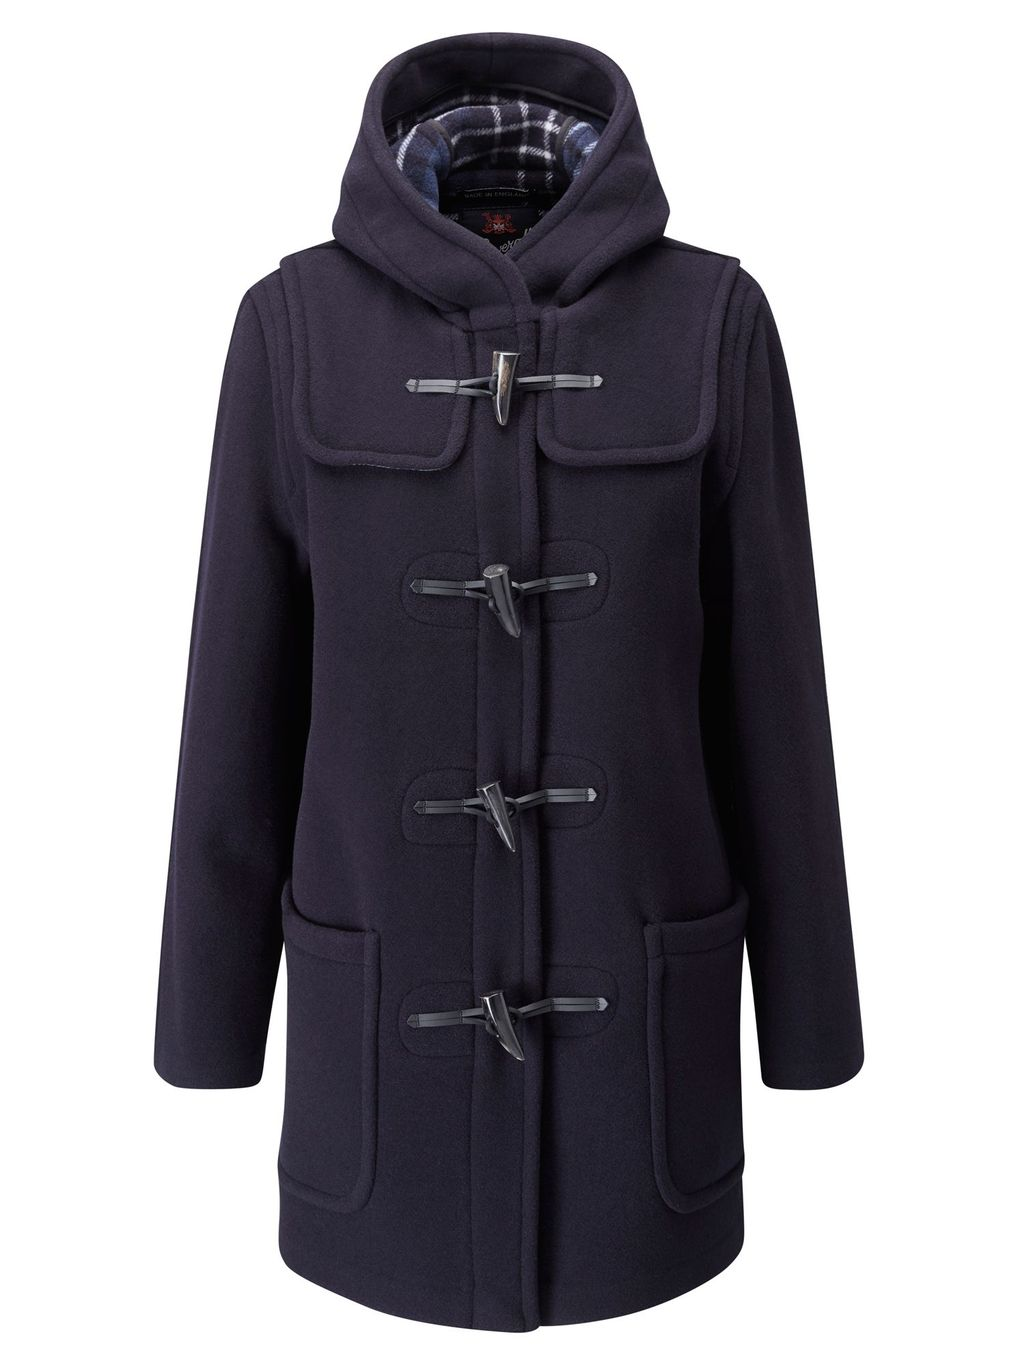 Mid Length Original Fit Duffle Coat, Navy - pattern: plain; collar: funnel; back detail: hood; style: duffle coat; length: mid thigh; predominant colour: navy; occasions: casual, creative work; fit: straight cut (boxy); fibres: wool - mix; sleeve length: long sleeve; sleeve style: standard; collar break: high; texture group: woven bulky/heavy; season: a/w 2015